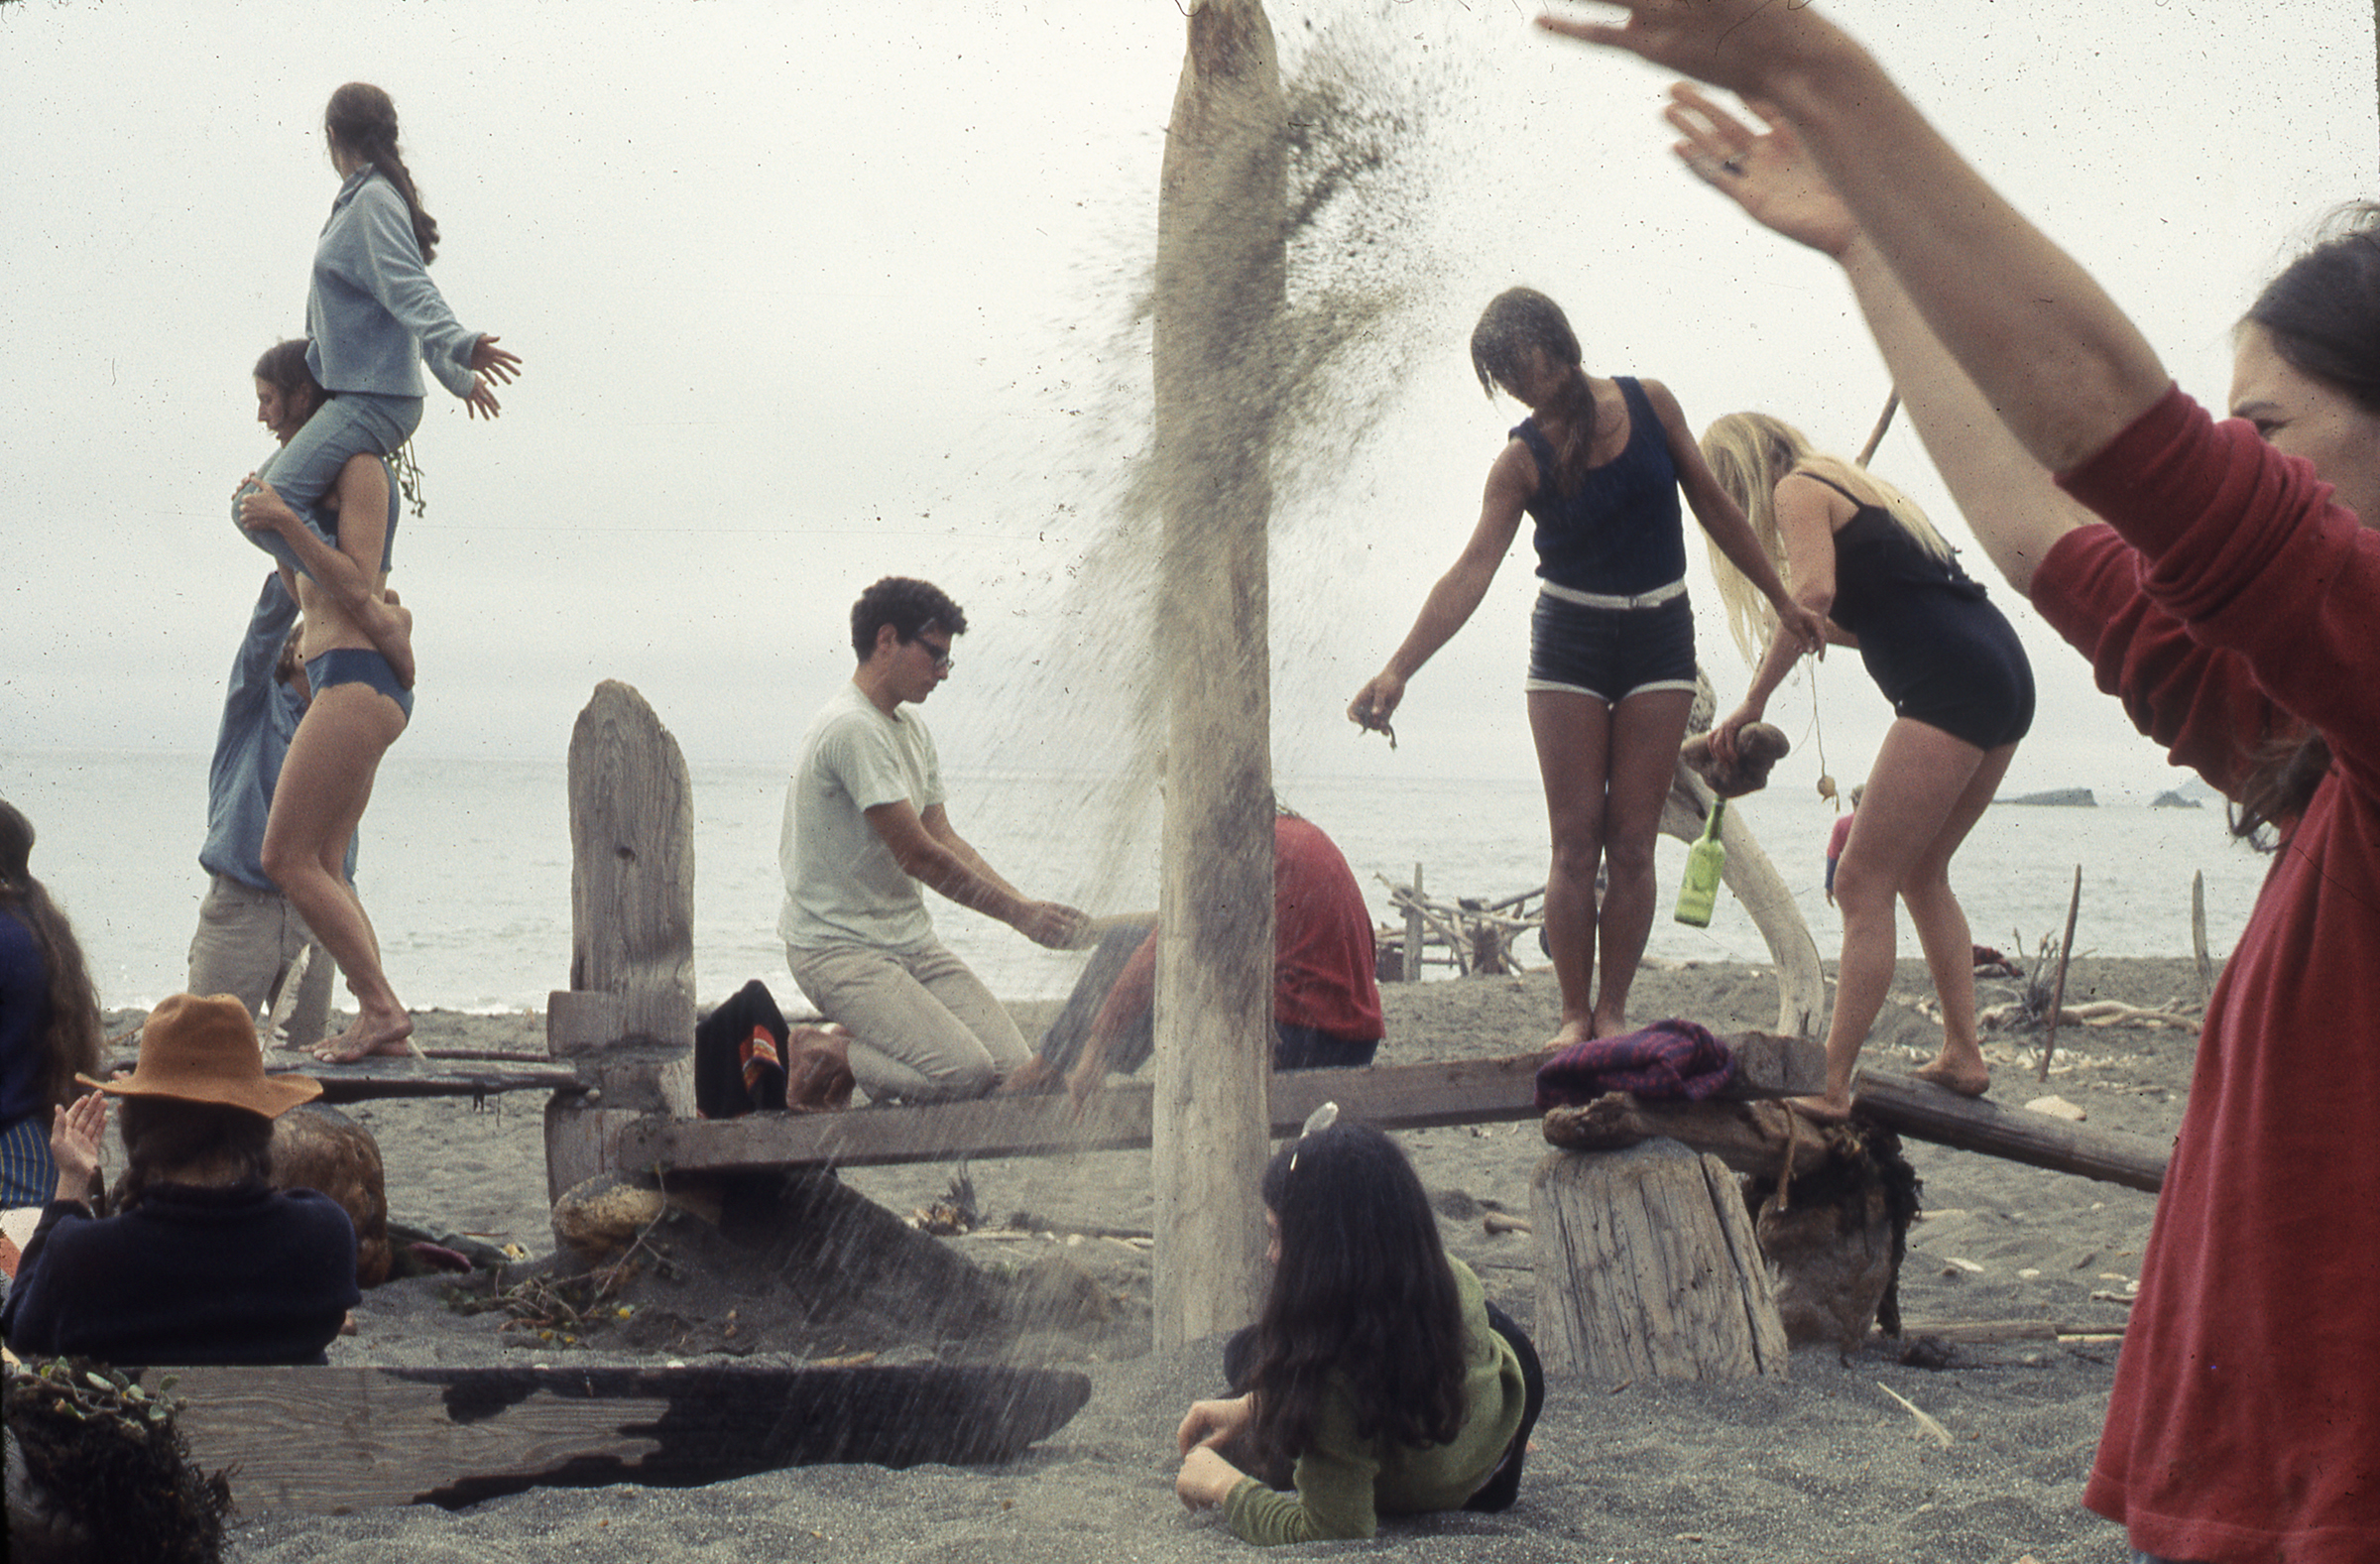 Anna & Lawrence Halprin, Experiments in Environment Workshop, Driftwood Village —Sea Ranch, CA, 1968.